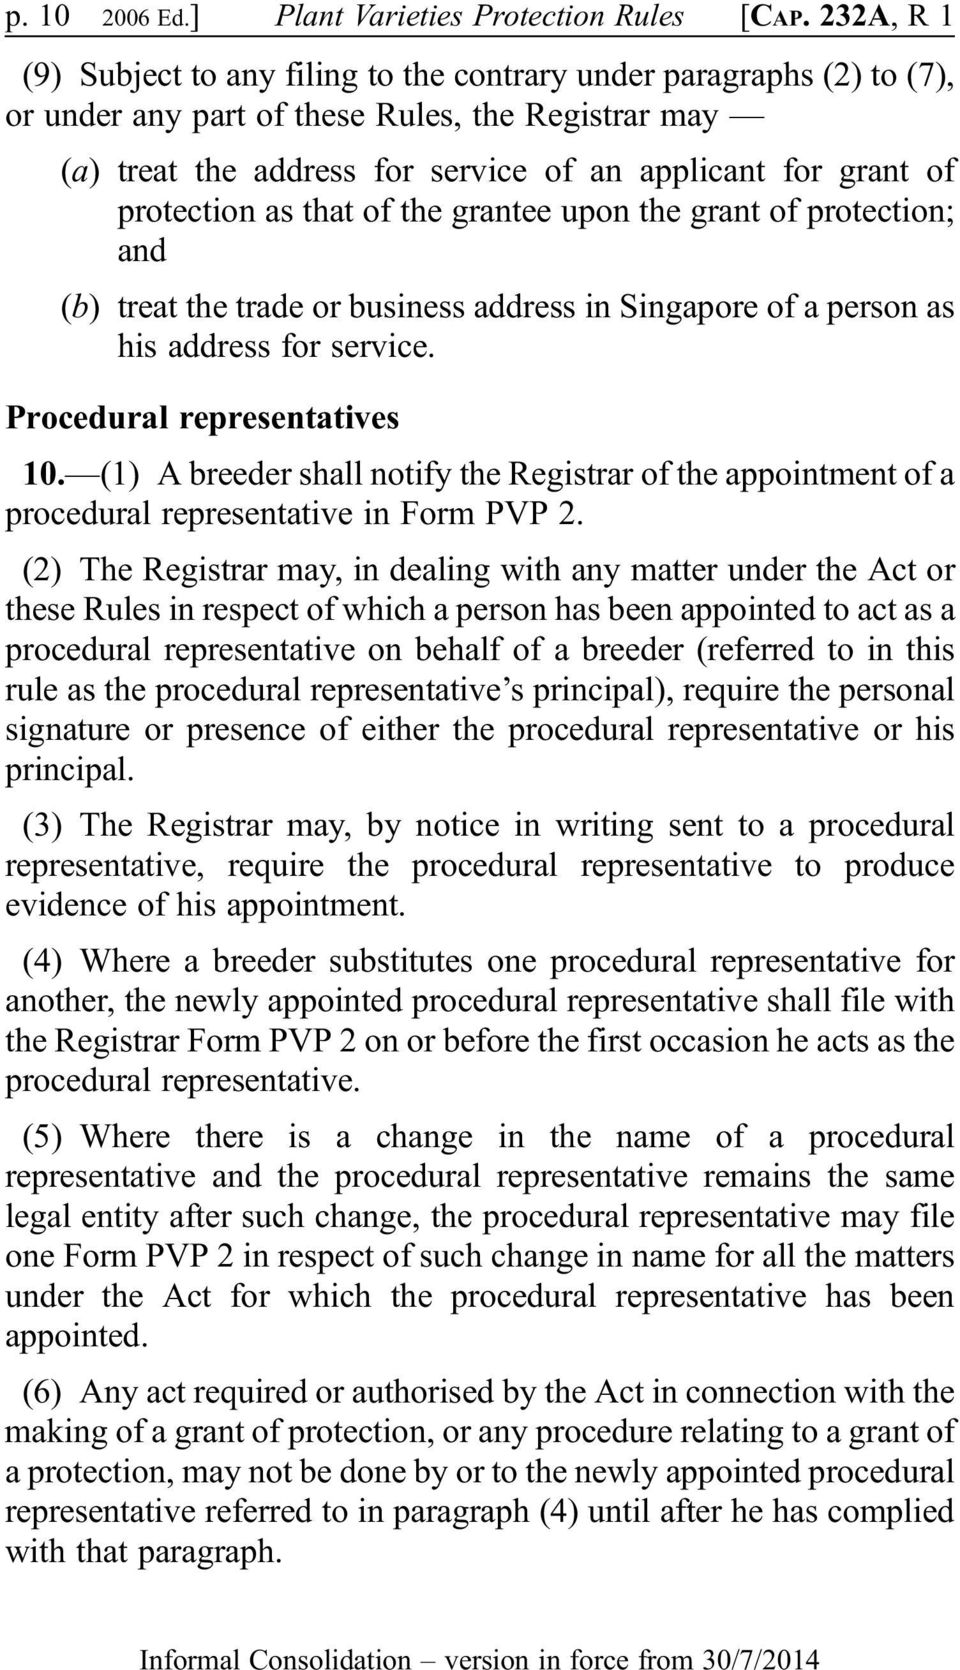 protection as that of the grantee upon the grant of protection; and (b) treat the trade or business address in Singapore of a person as his address for service. Procedural representatives 10.